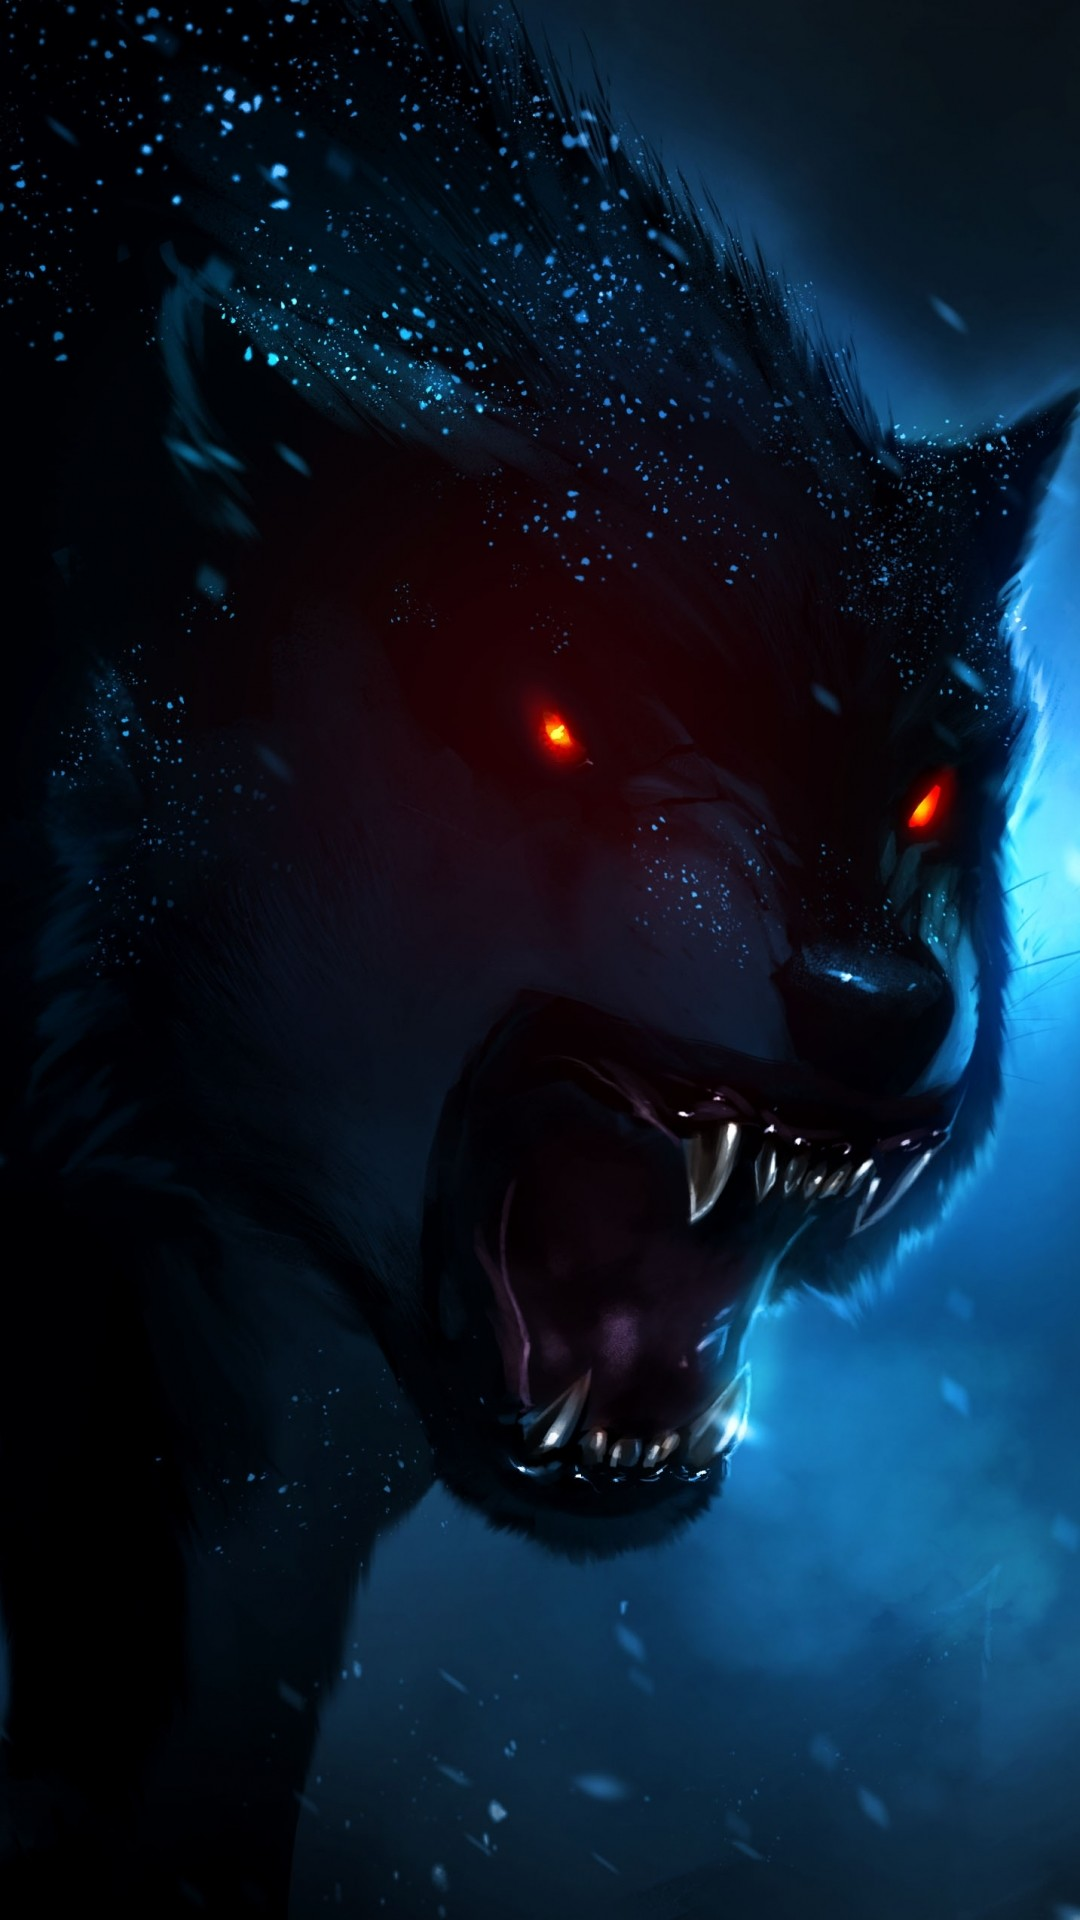 scary wallpaper for iphone (56+ images)